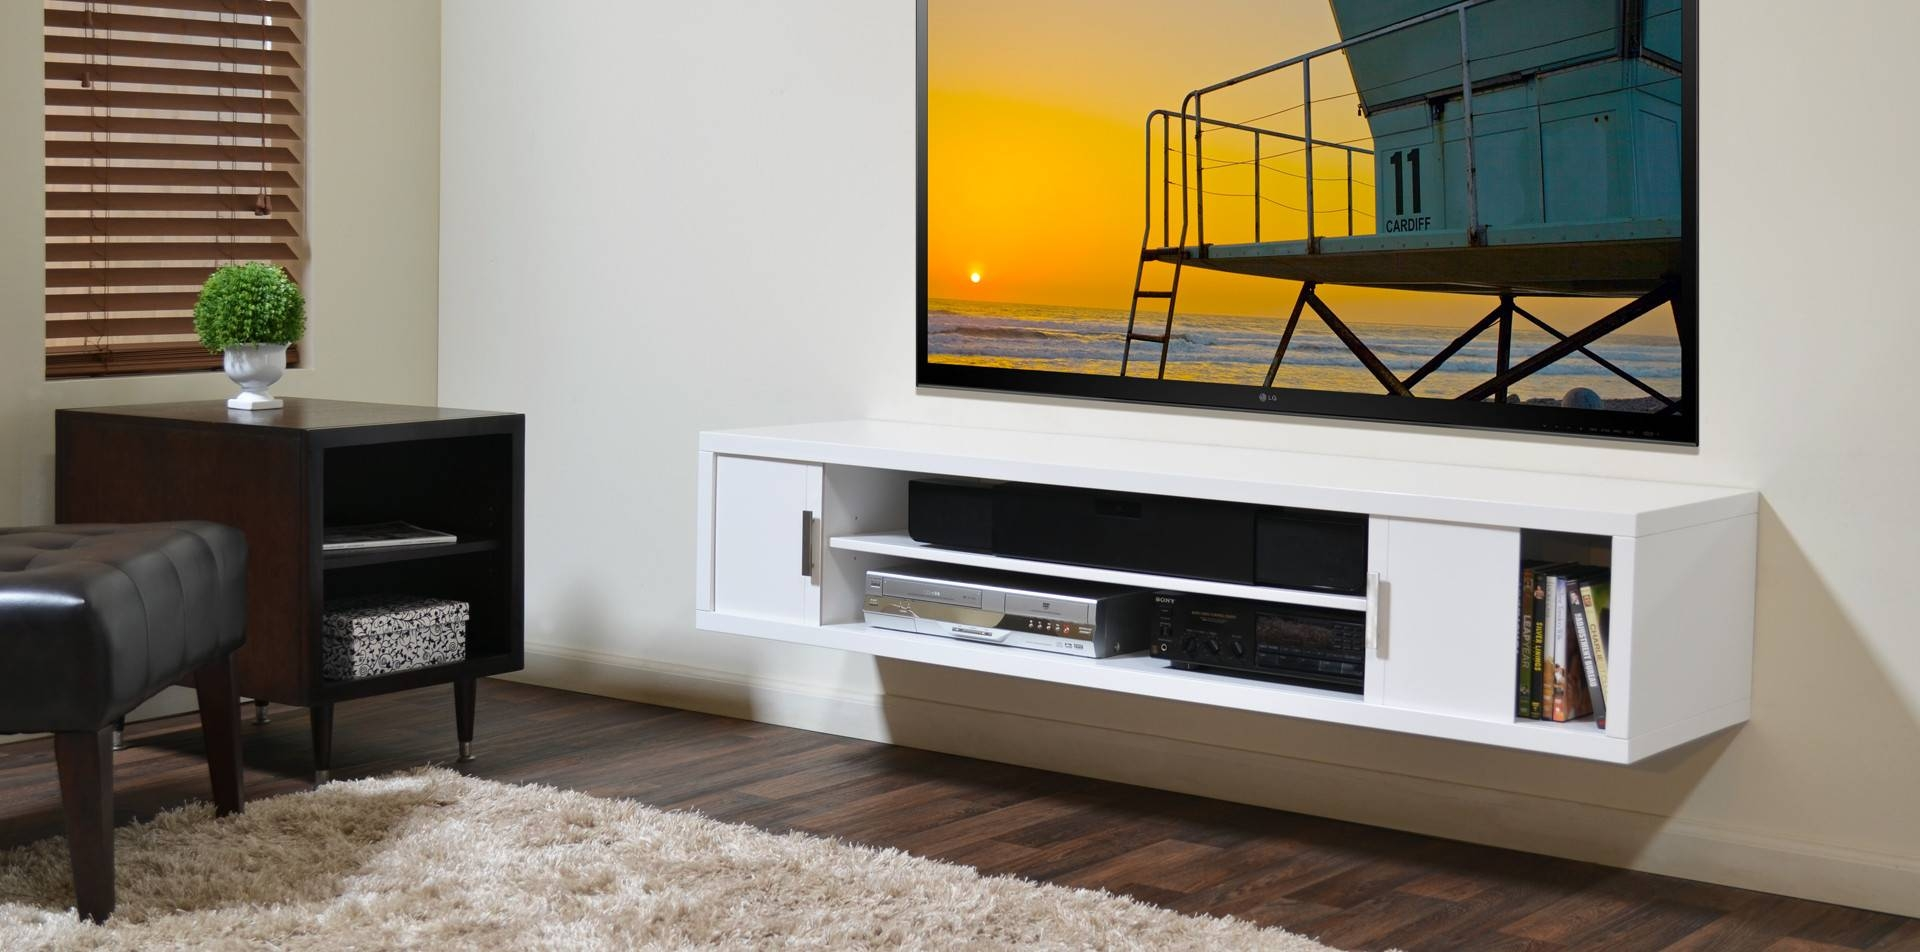 Brown Wall Mounted Media Shelf And Tv Stand - Decofurnish intended for Single Shelf Tv Stands (Image 3 of 15)